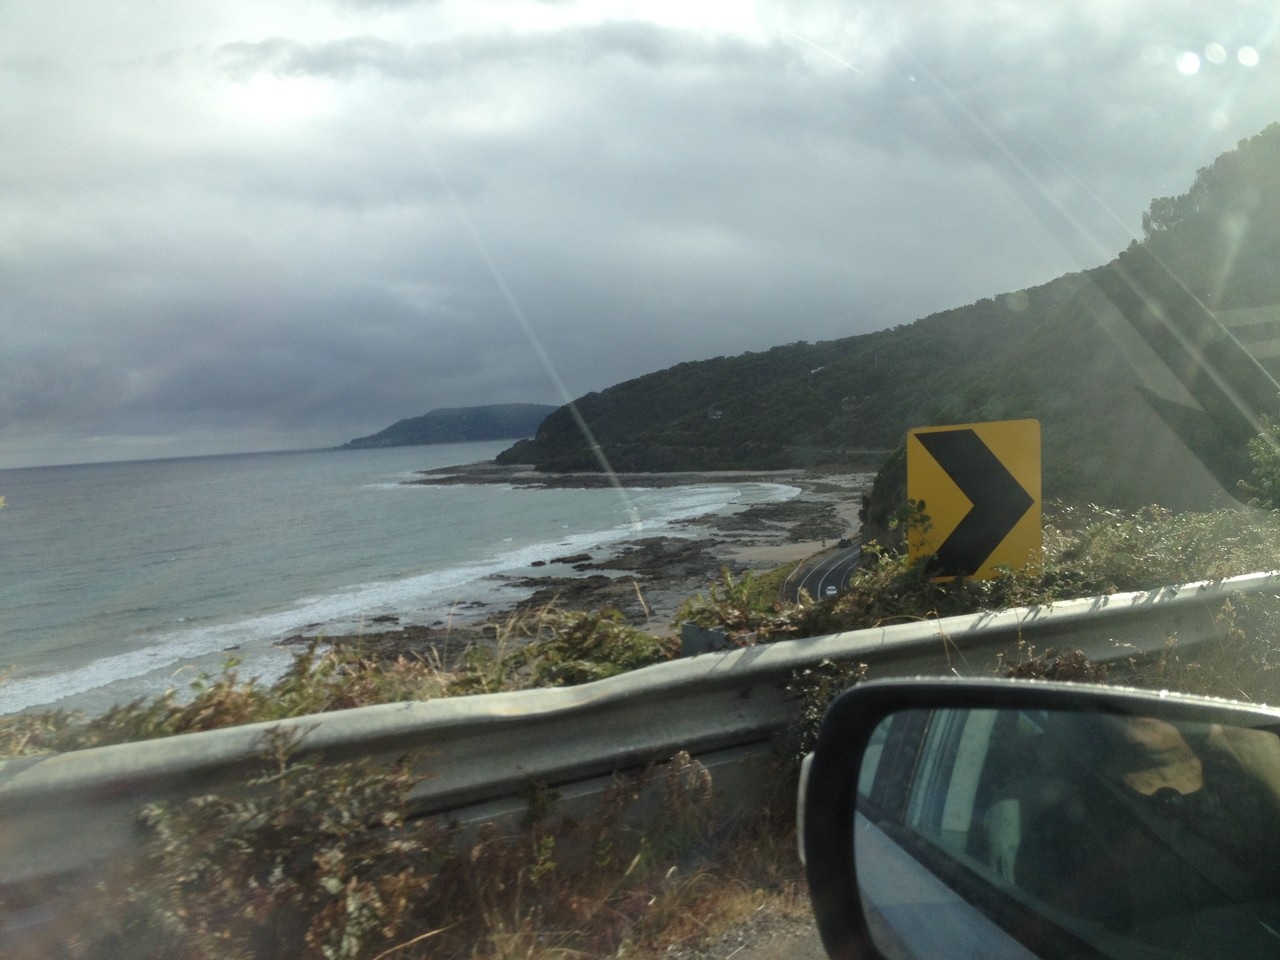 Lovely coast road! But someone seems to have attempted to get down to the beach quickly ...